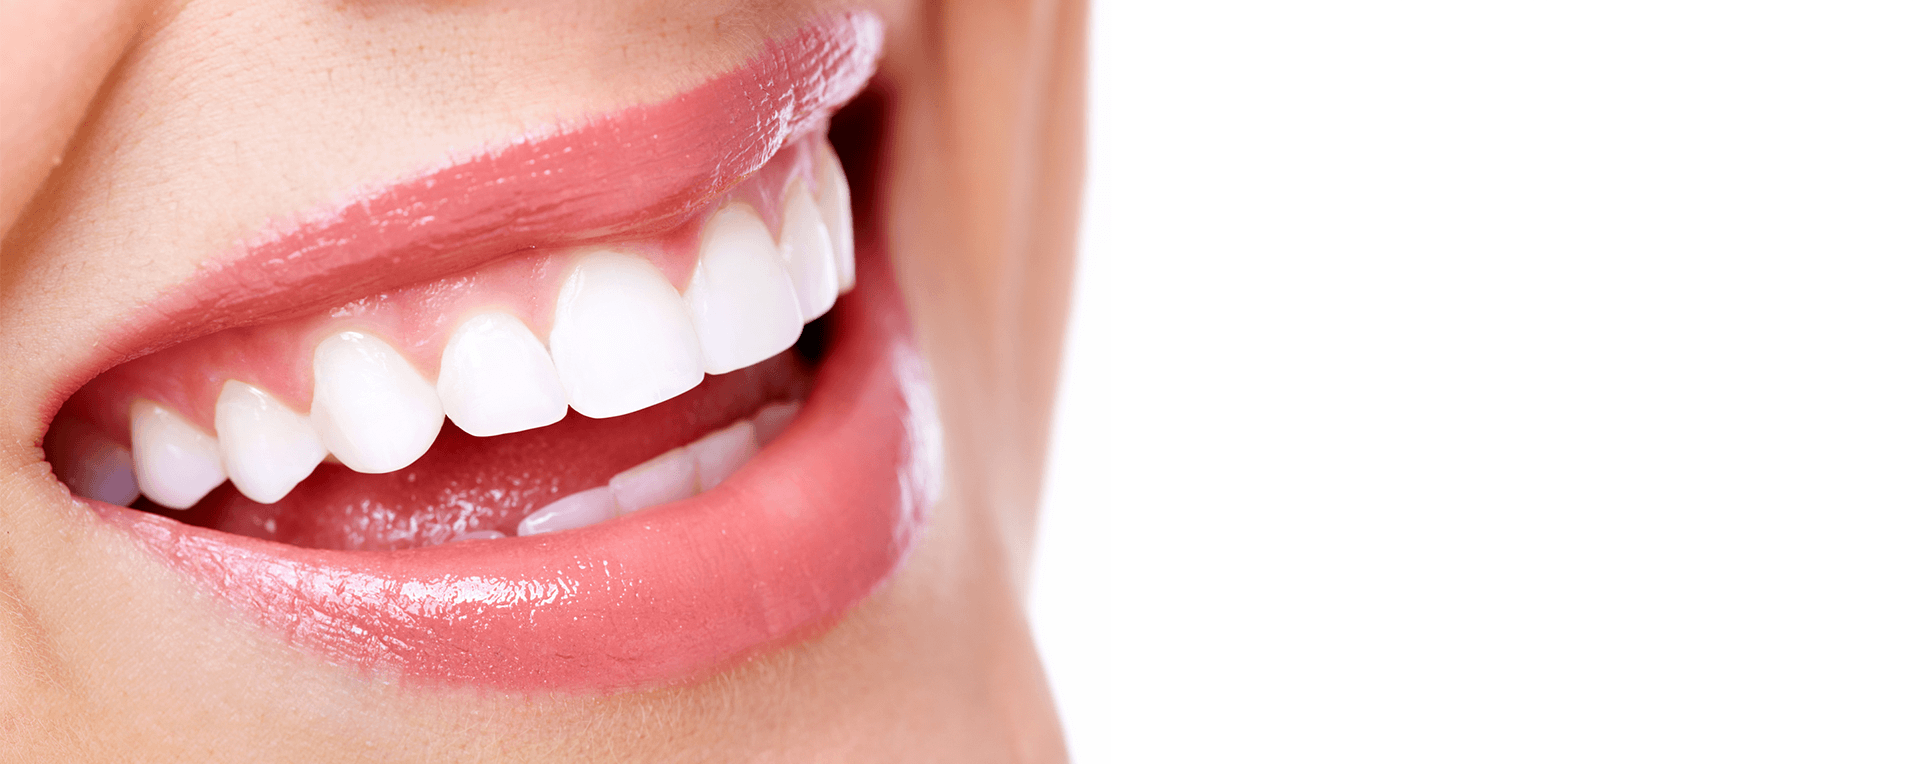 Teeth Png Hd Transparent Teeth Hd Png Im 1516638 Png Images Pngio